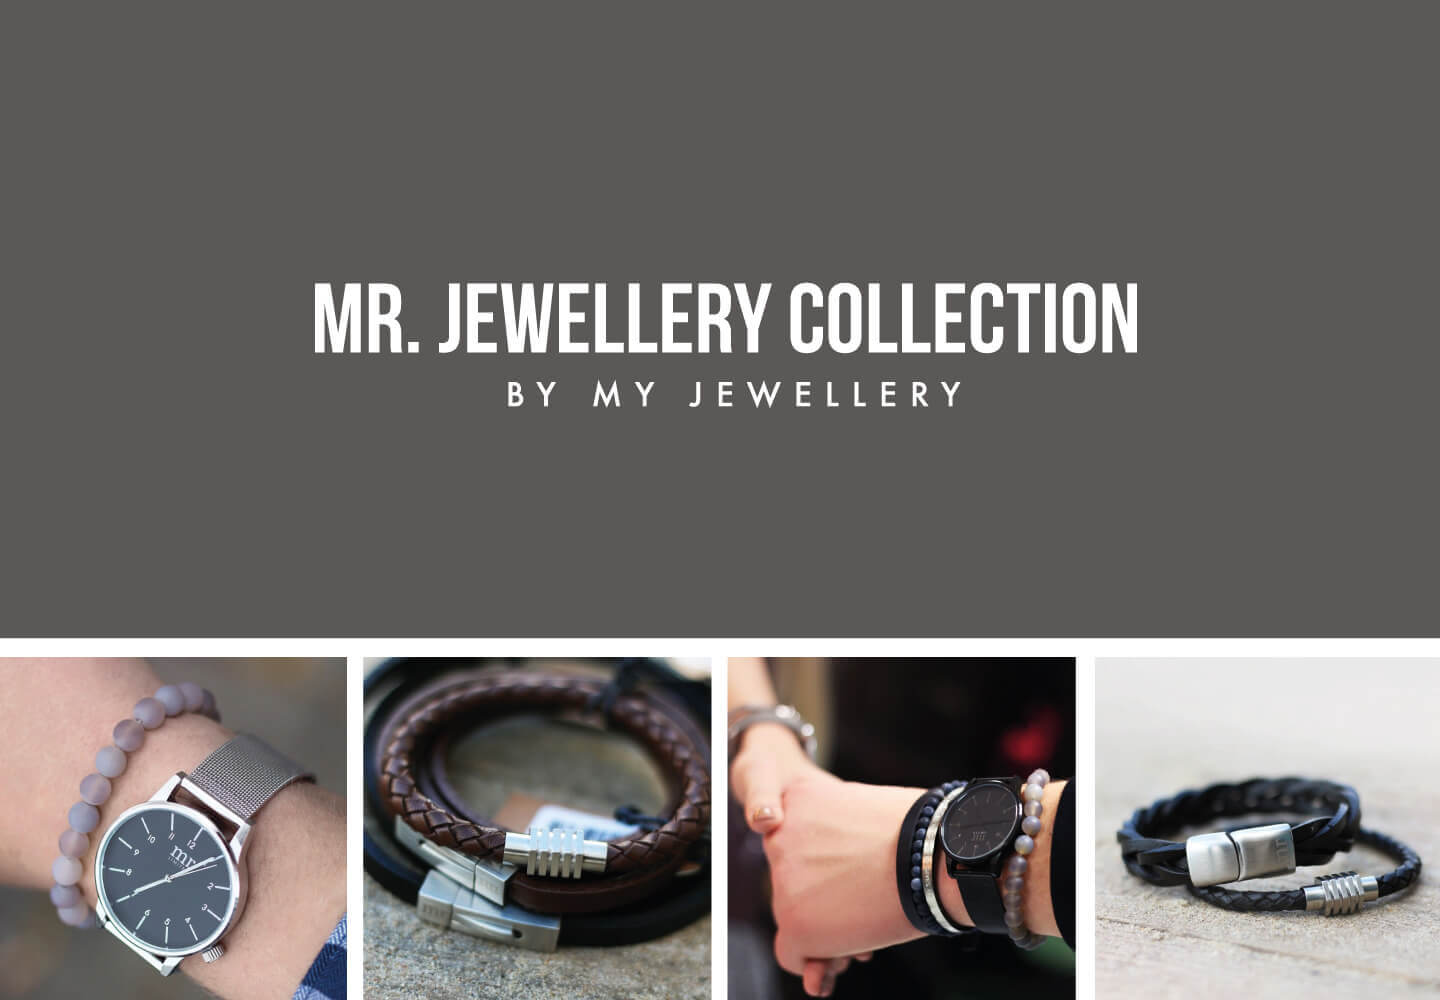 Mr. Jewellery Collection